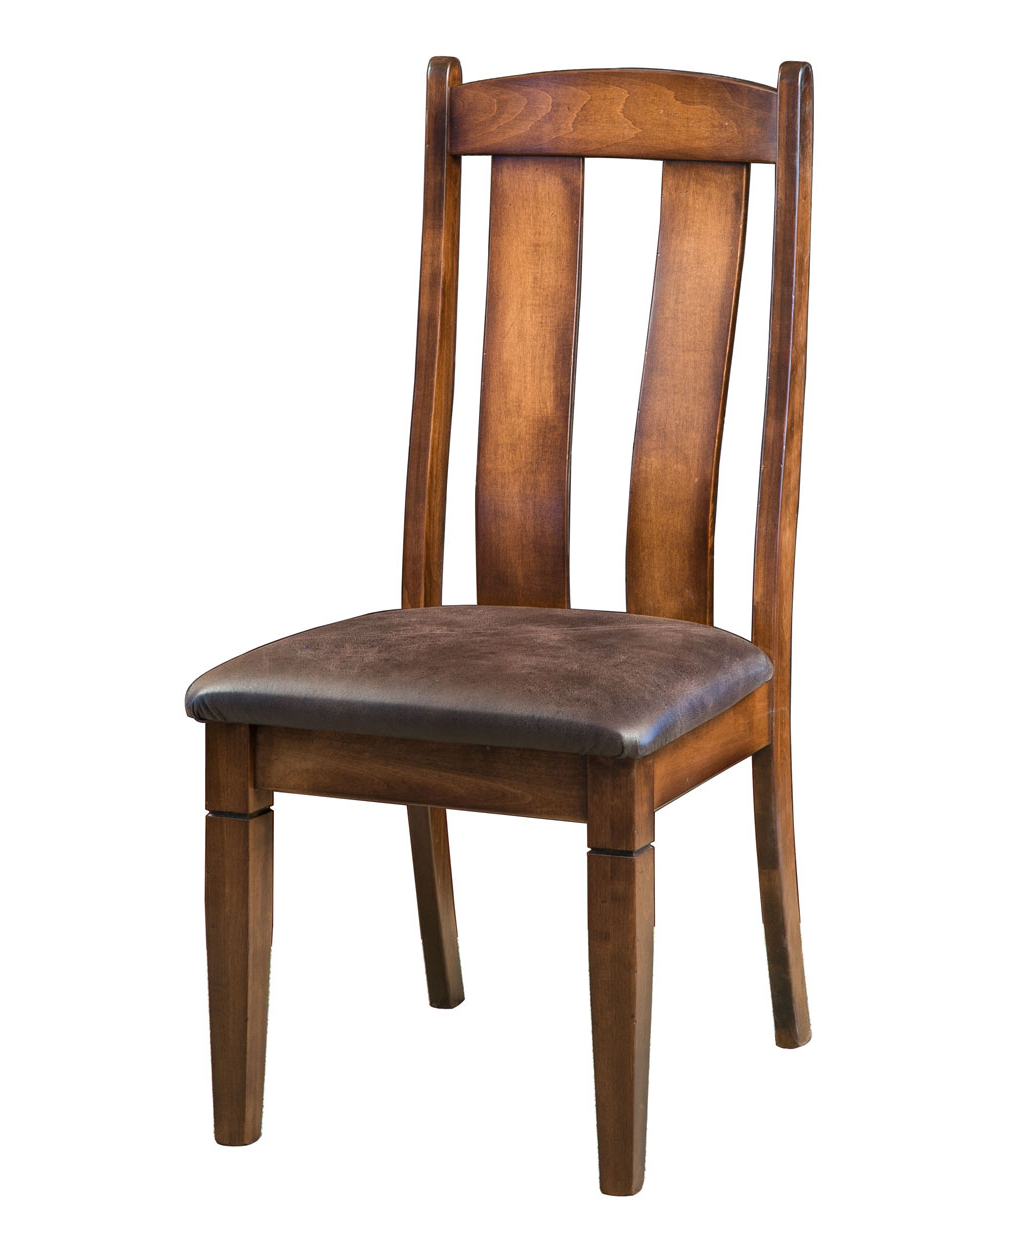 Best And Newest Mansfield Dining Chair – Amish Direct Furniture Inside Mansfield Cocoa Leather Sofa Chairs (View 3 of 20)